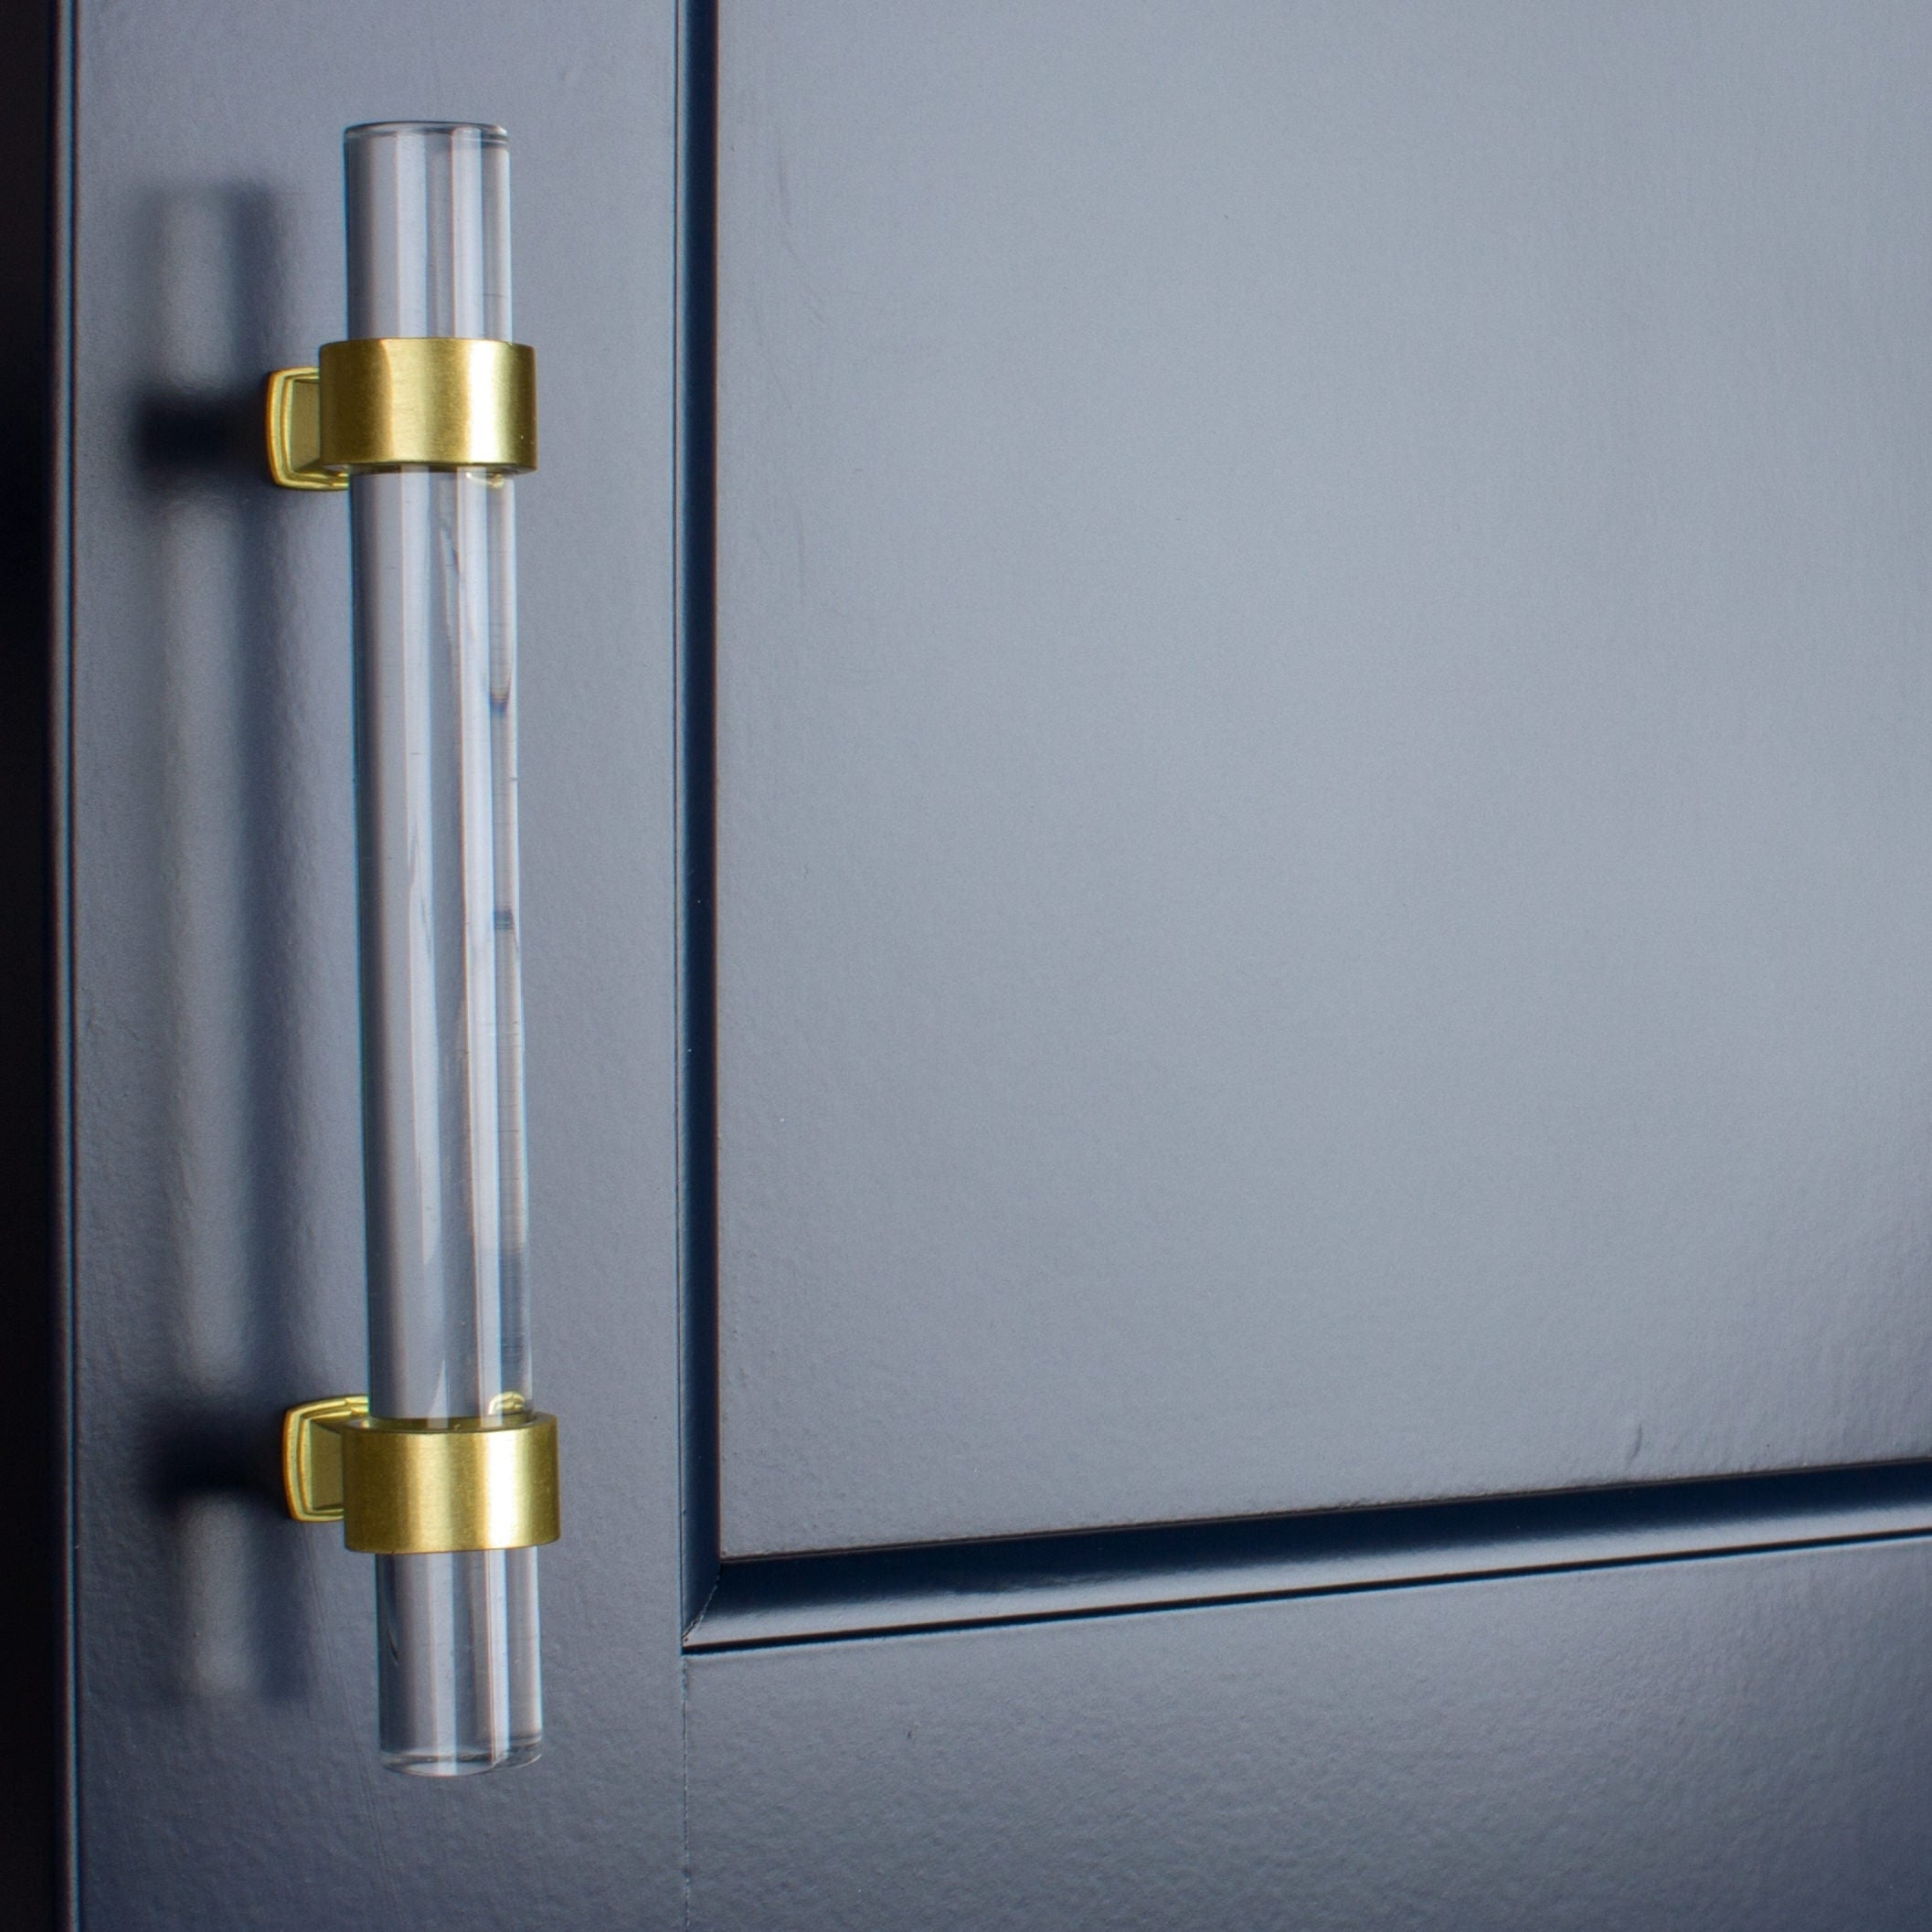 Charmant Shop GlideRite 3.75 Inch Clear Acrylic Cabinet Pulls Satin Gold (Set Of 10)    Free Shipping Today   Overstock   25859577